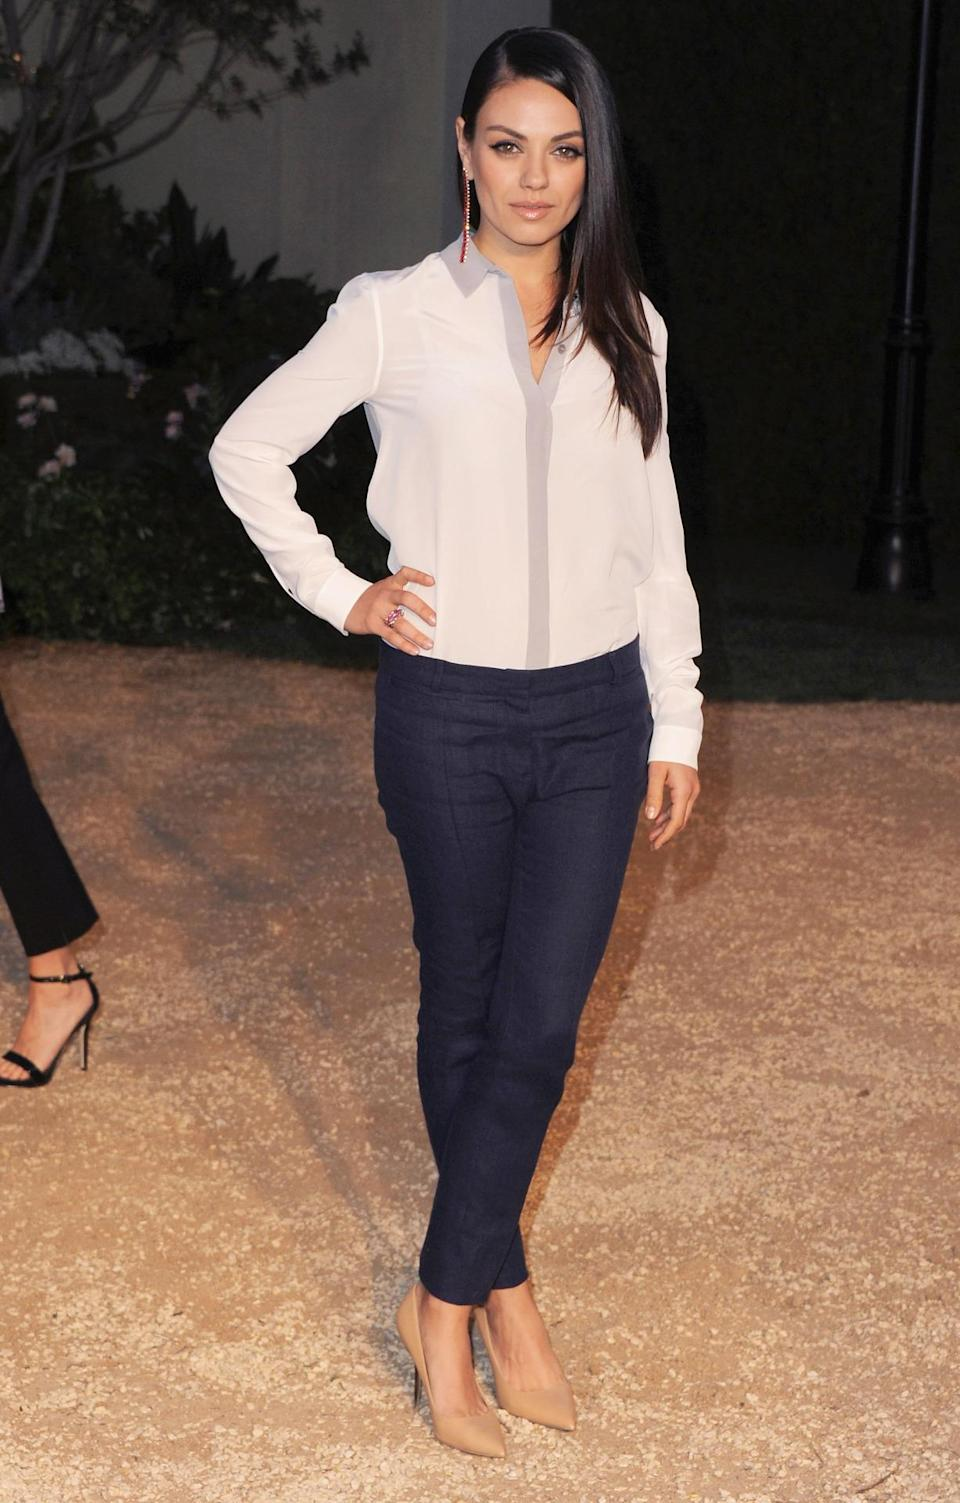 For mom's night out Mila Kunis wore denim trousers, a white button down blouse, and nude heels. With her hair straightened, makeup glowing, and statement earrings on, she amped up the daytime outfit for night.